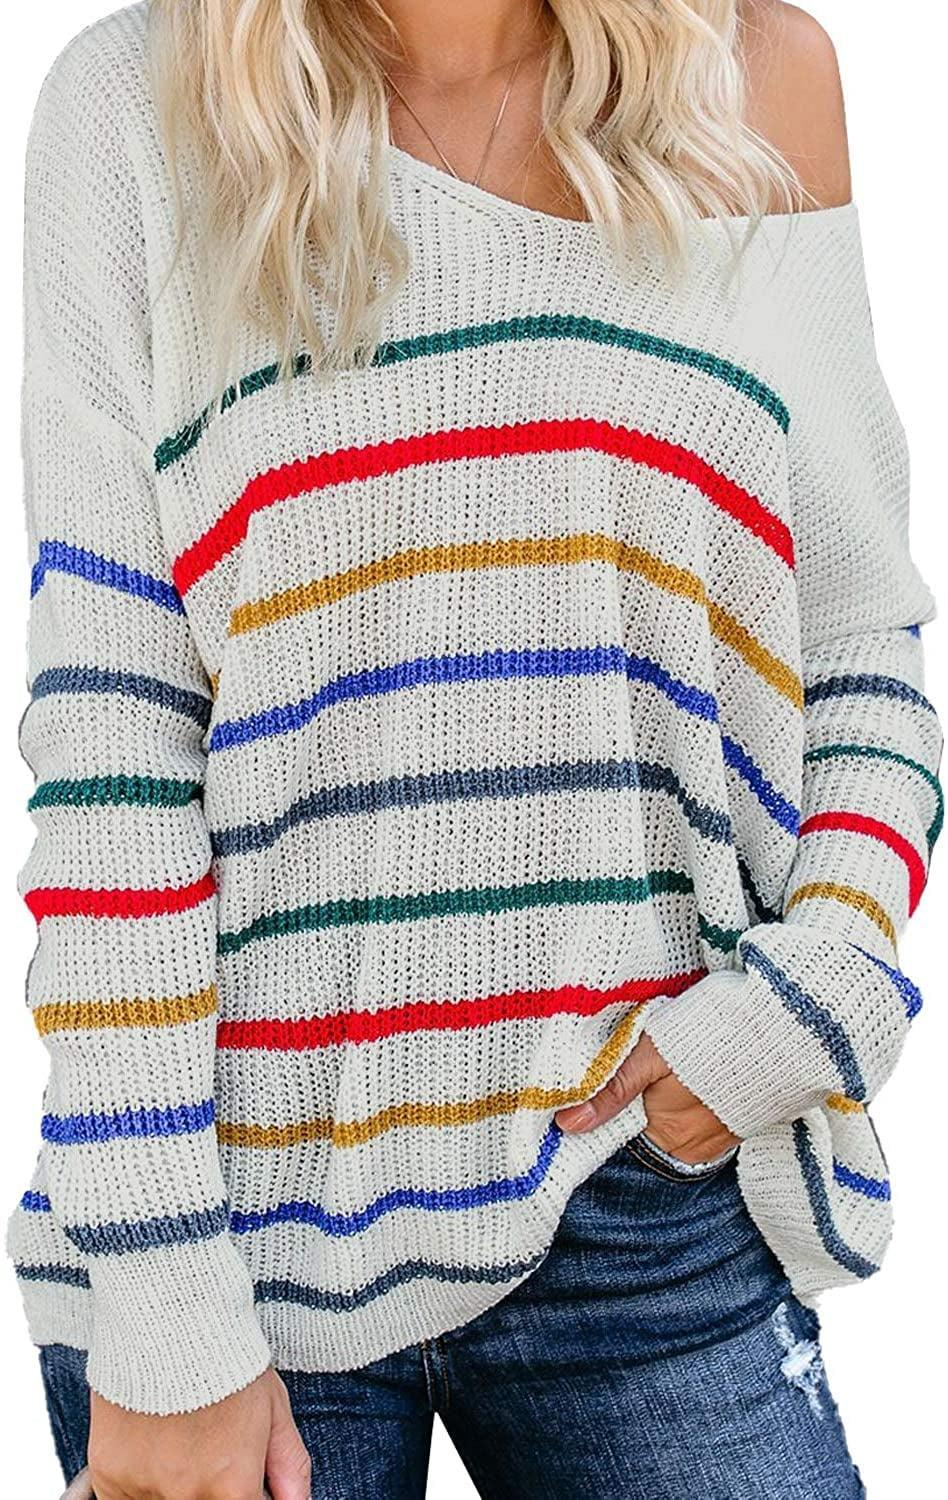 """<p>Pair this slouchy <span>Actloe Lightweight Rainbow-Striped Pullover</span> ($30) with your <a href=""""https://www.popsugar.com/latest/Denim"""" class=""""link rapid-noclick-resp"""" rel=""""nofollow noopener"""" target=""""_blank"""" data-ylk=""""slk:favorite pair of jeans"""">favorite pair of jeans</a>.</p>"""